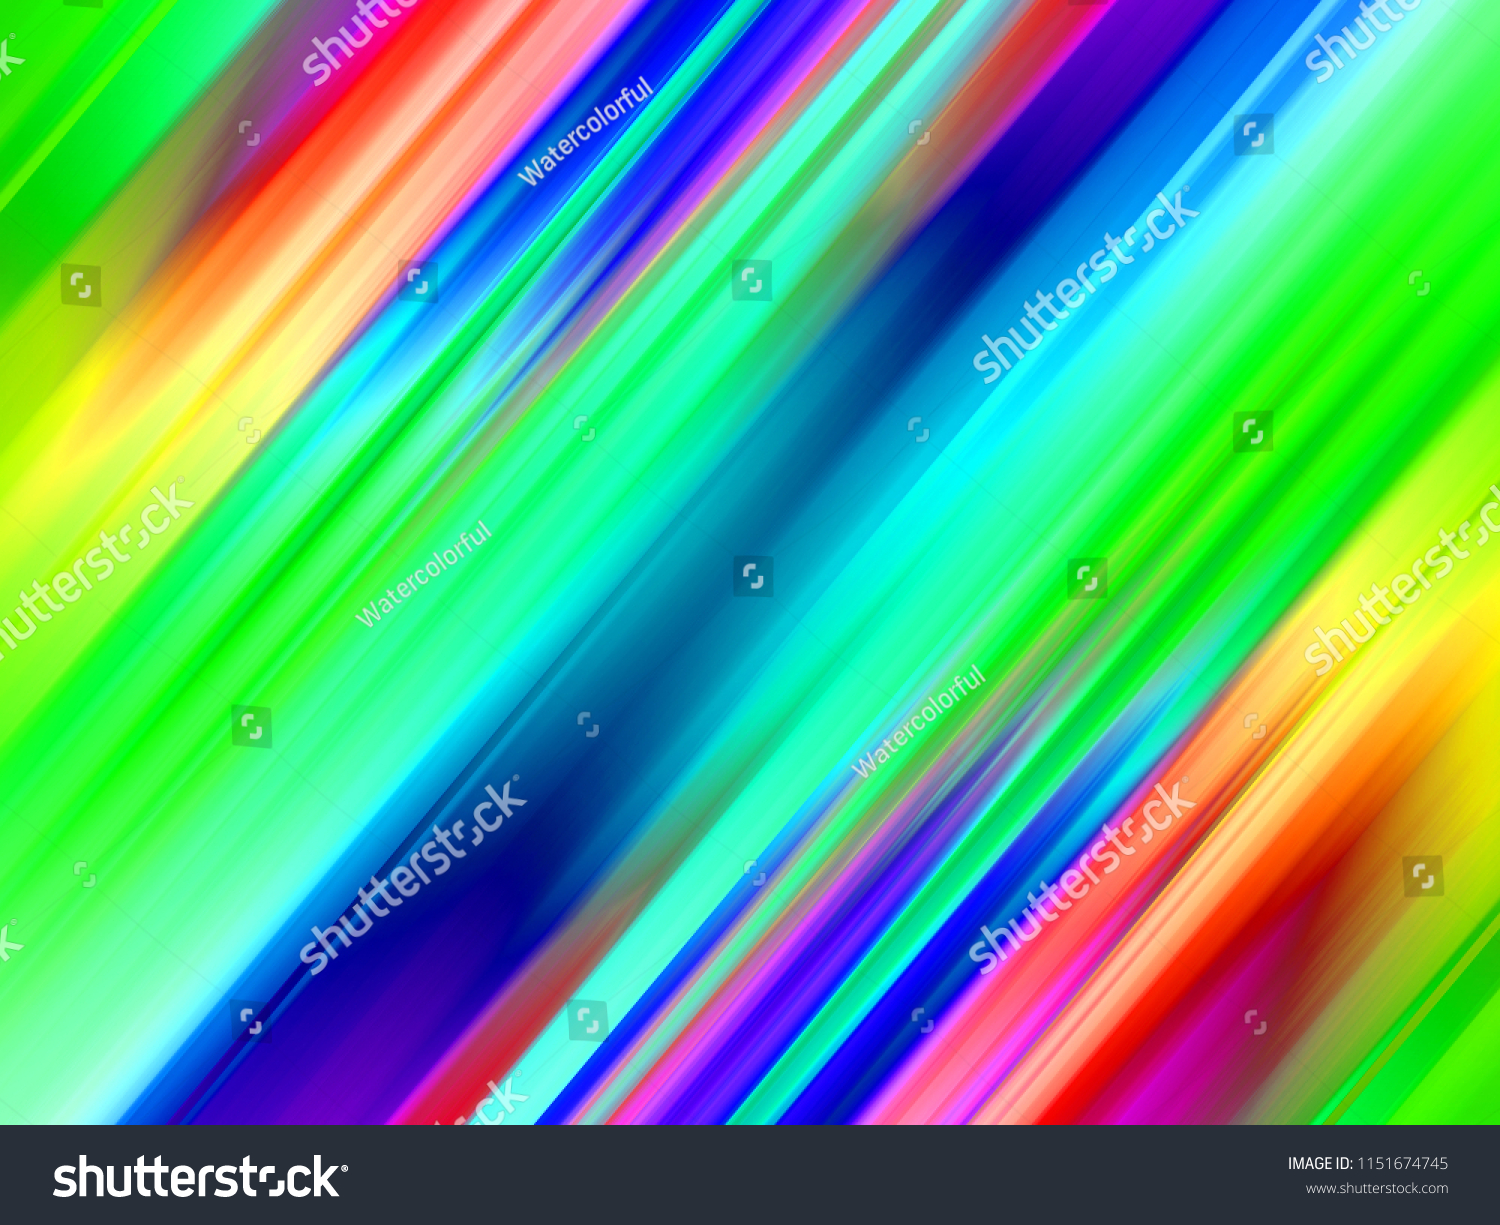 Art Decoration Conception Abstract Vibrant Slanted Lines Pattern Blurred Stock